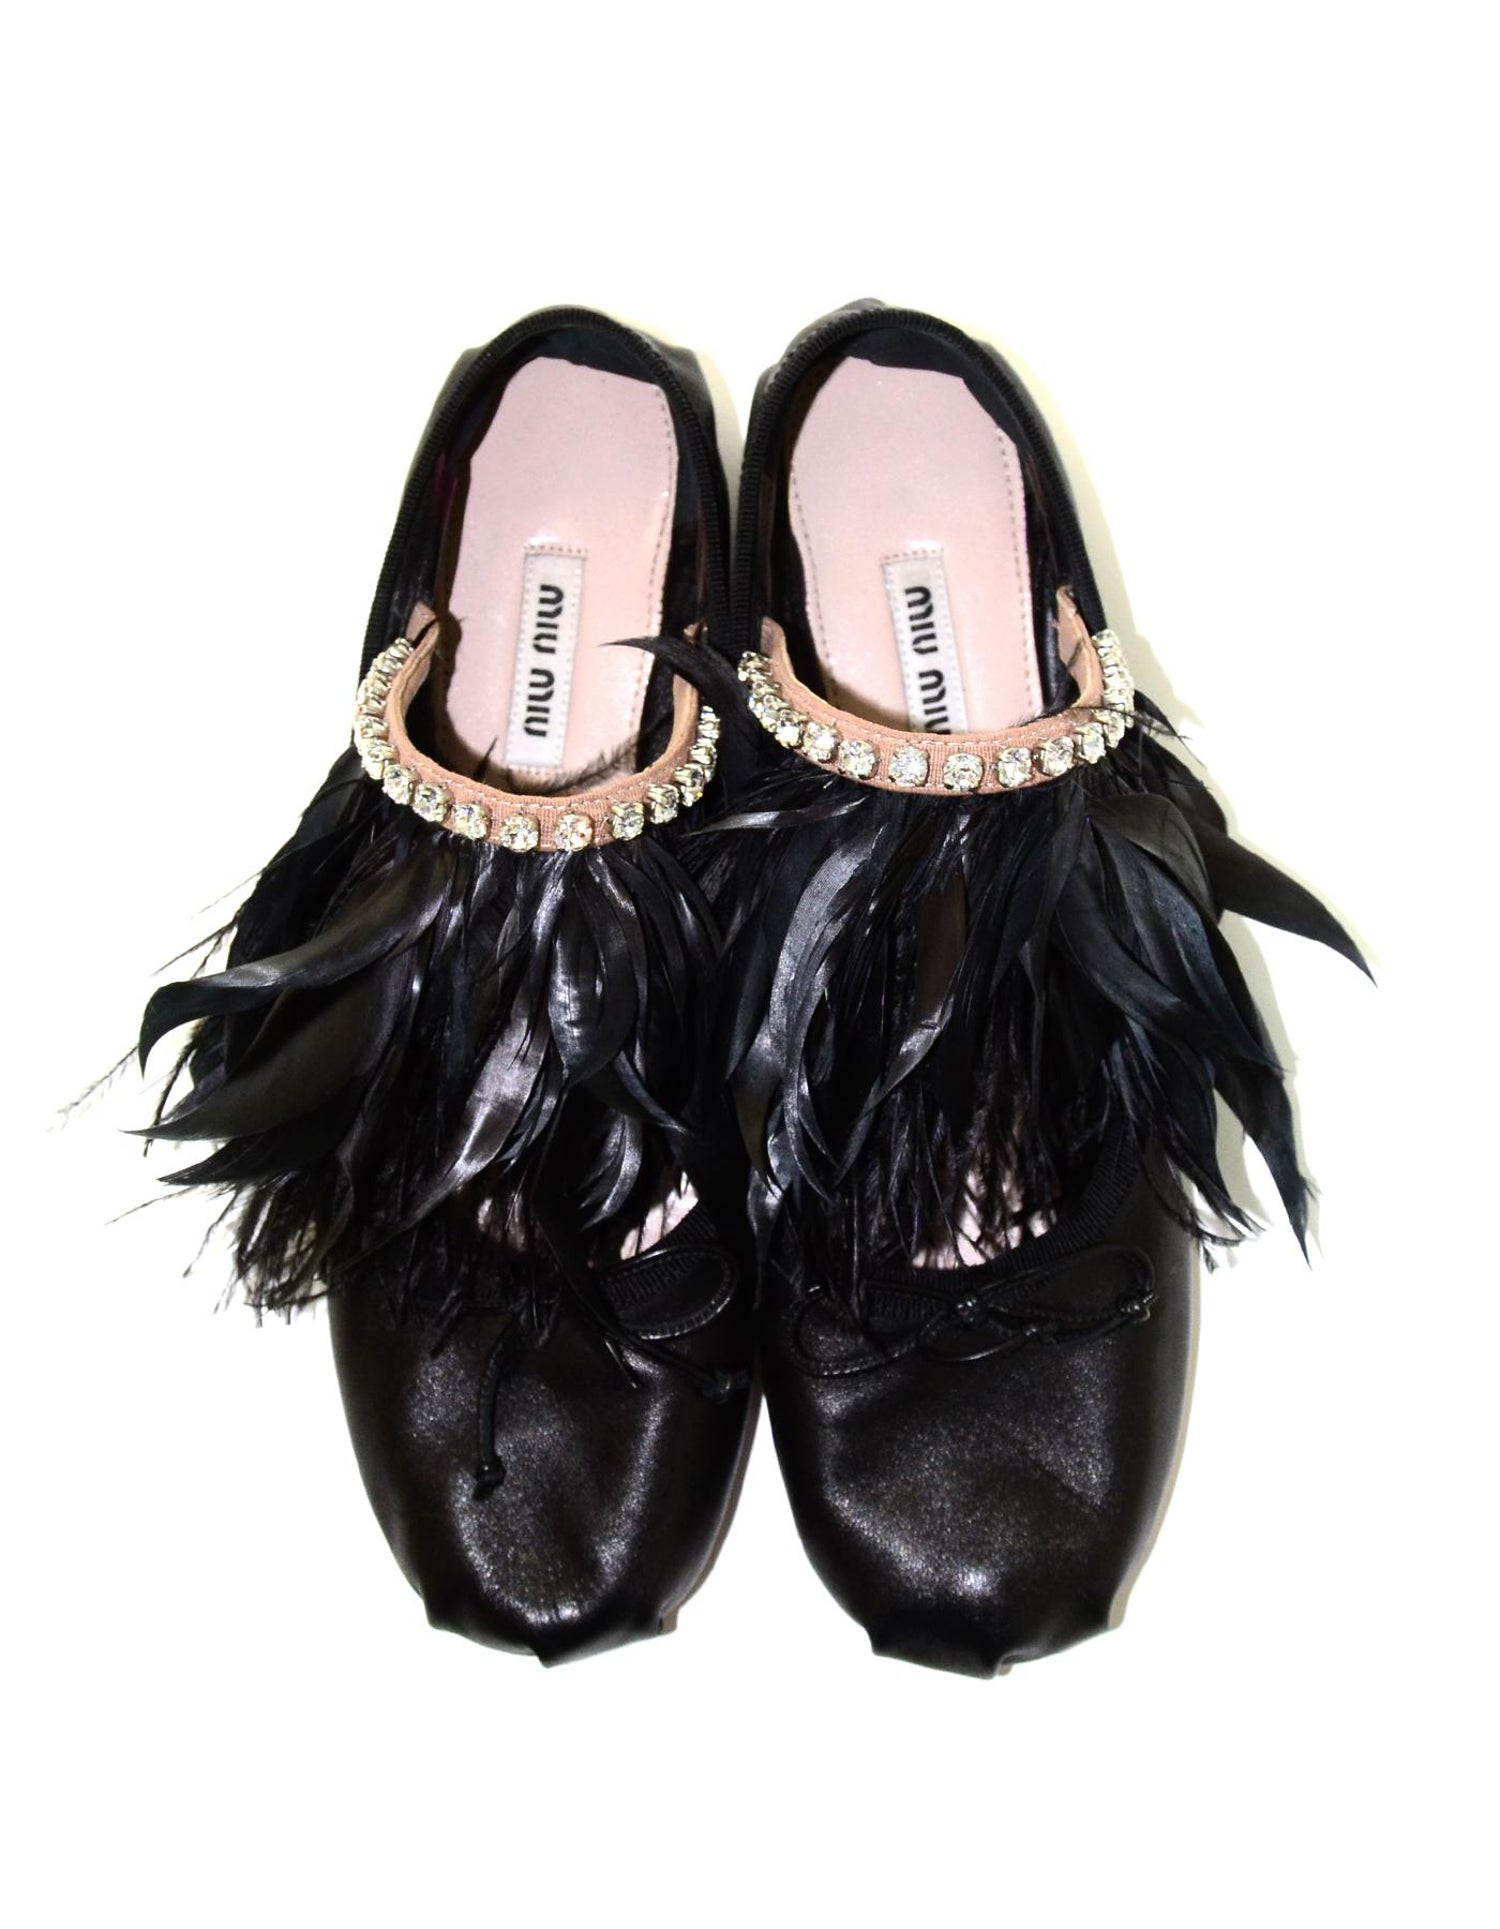 6fd5e4f40a3 Miu Miu Black Leather Feather Trim Ballet Slippers Flat Shoes W  Crystals  Sz 38 For Sale at 1stdibs